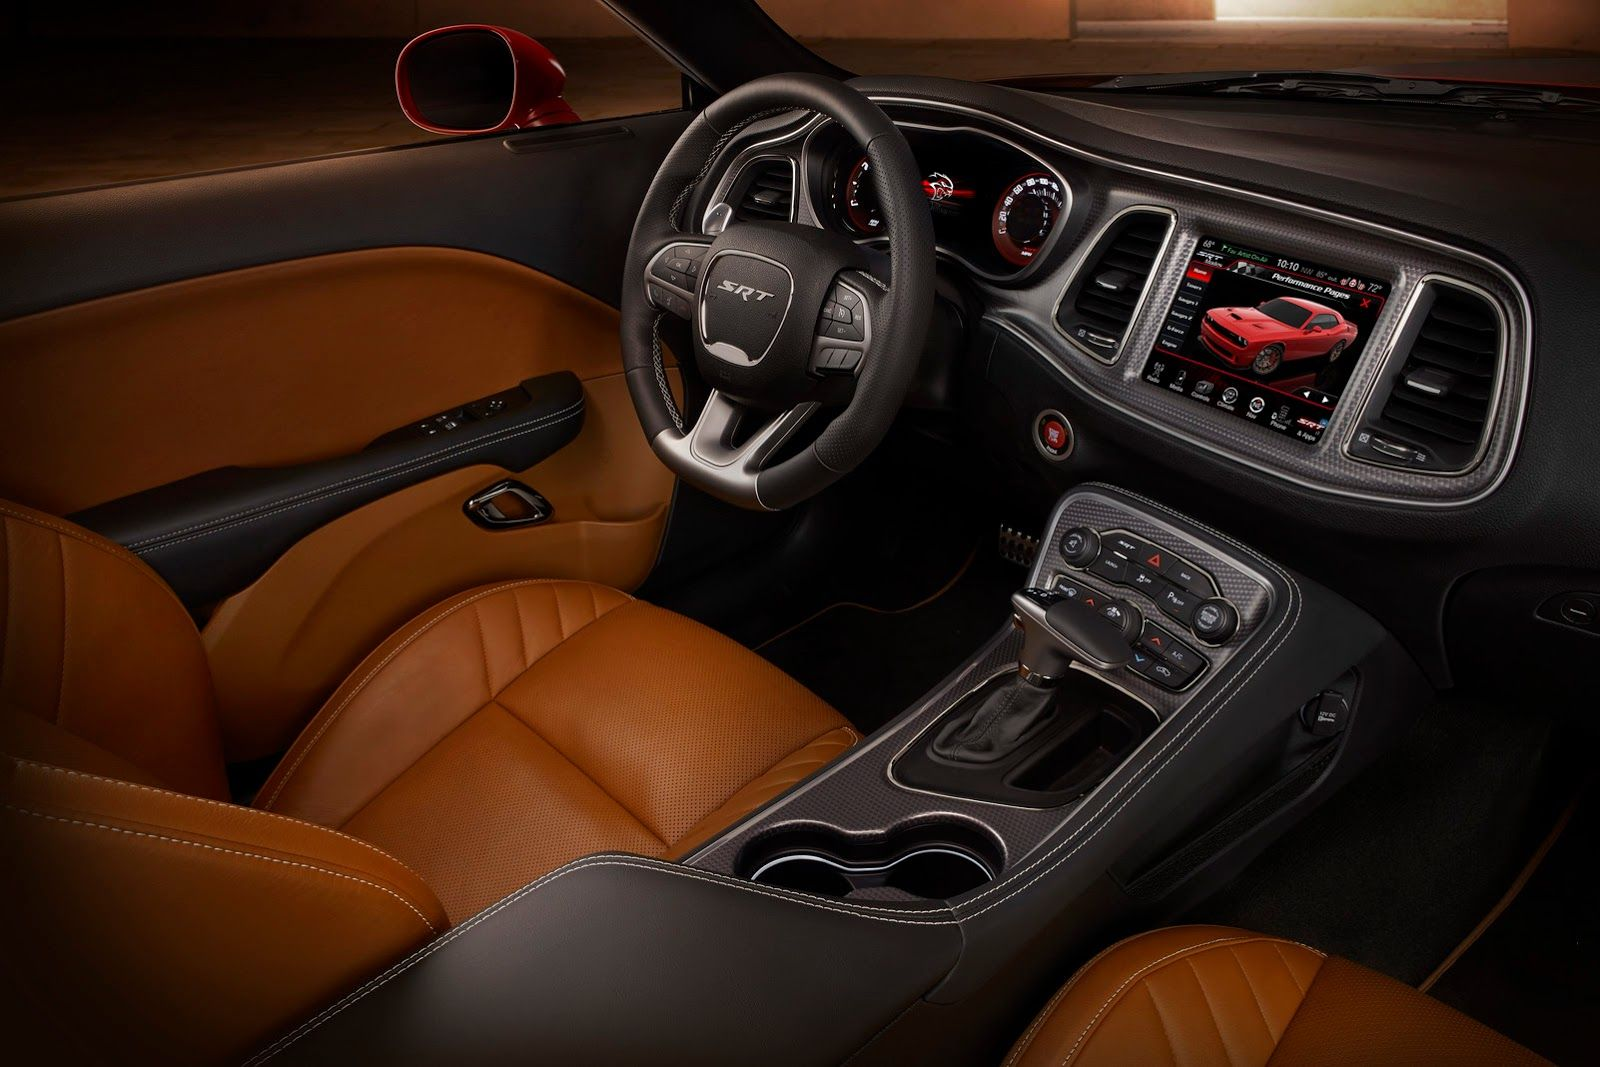 Dodge Unleashes New 2015 Challenger Srt Hellcat With 600hp 87 Photos Videos Carscoops Dodge Challenger Challenger Srt Hellcat Dodge Challenger Hellcat